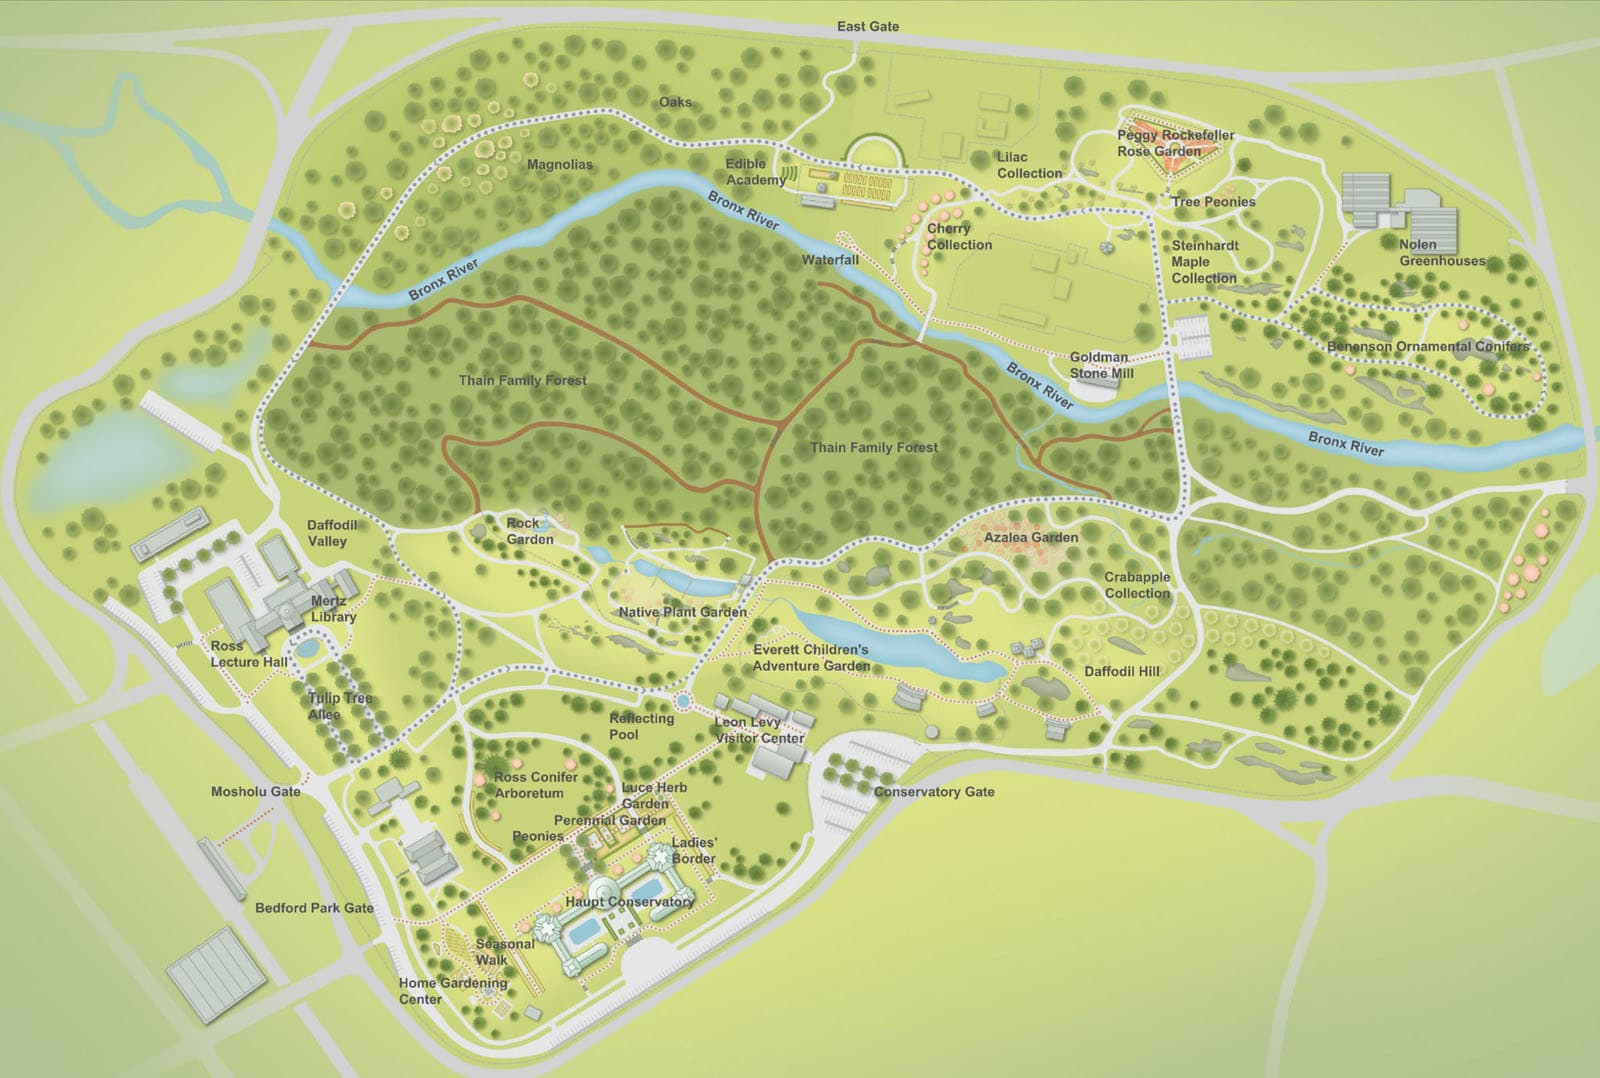 New York Botanical Garden map